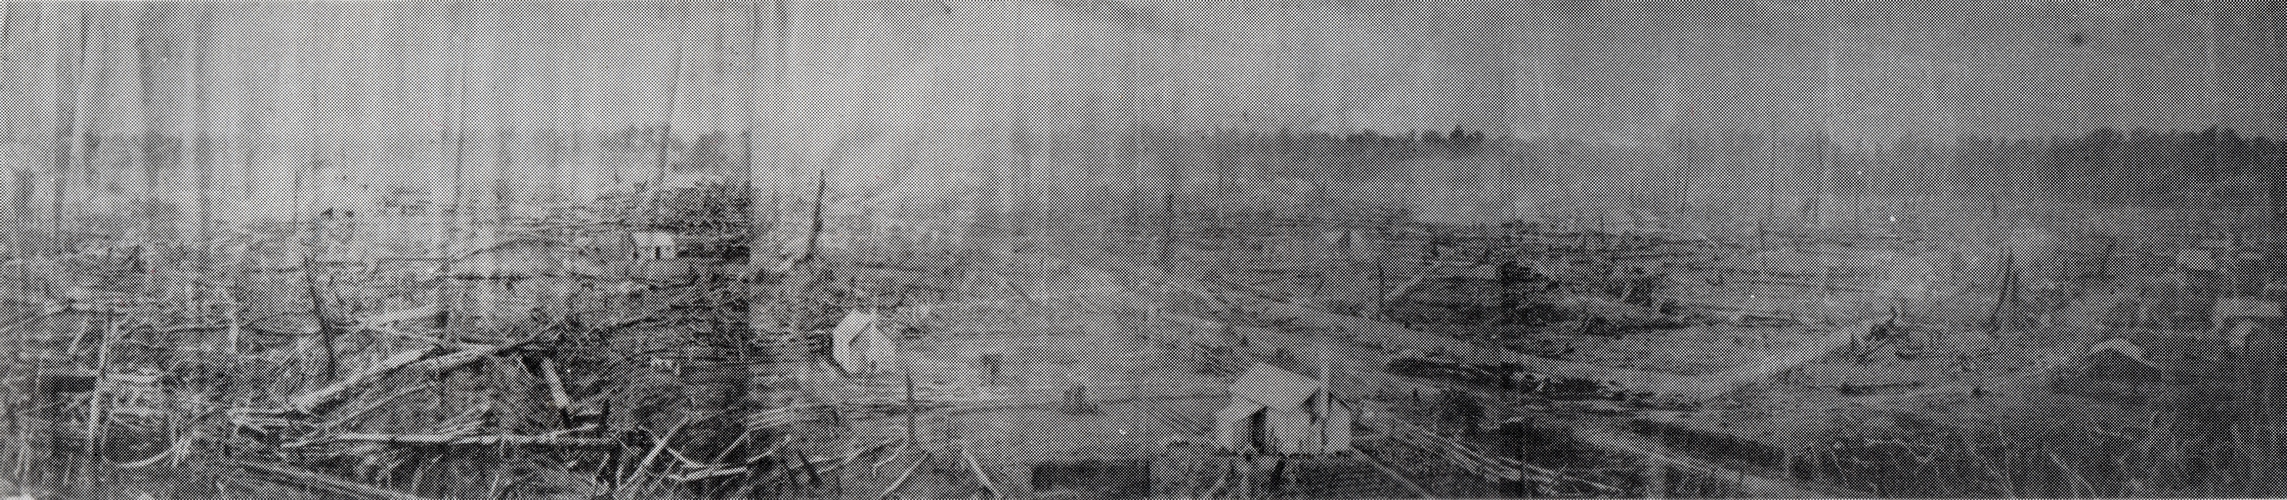 Black and white panoramic  view of early Inglewood